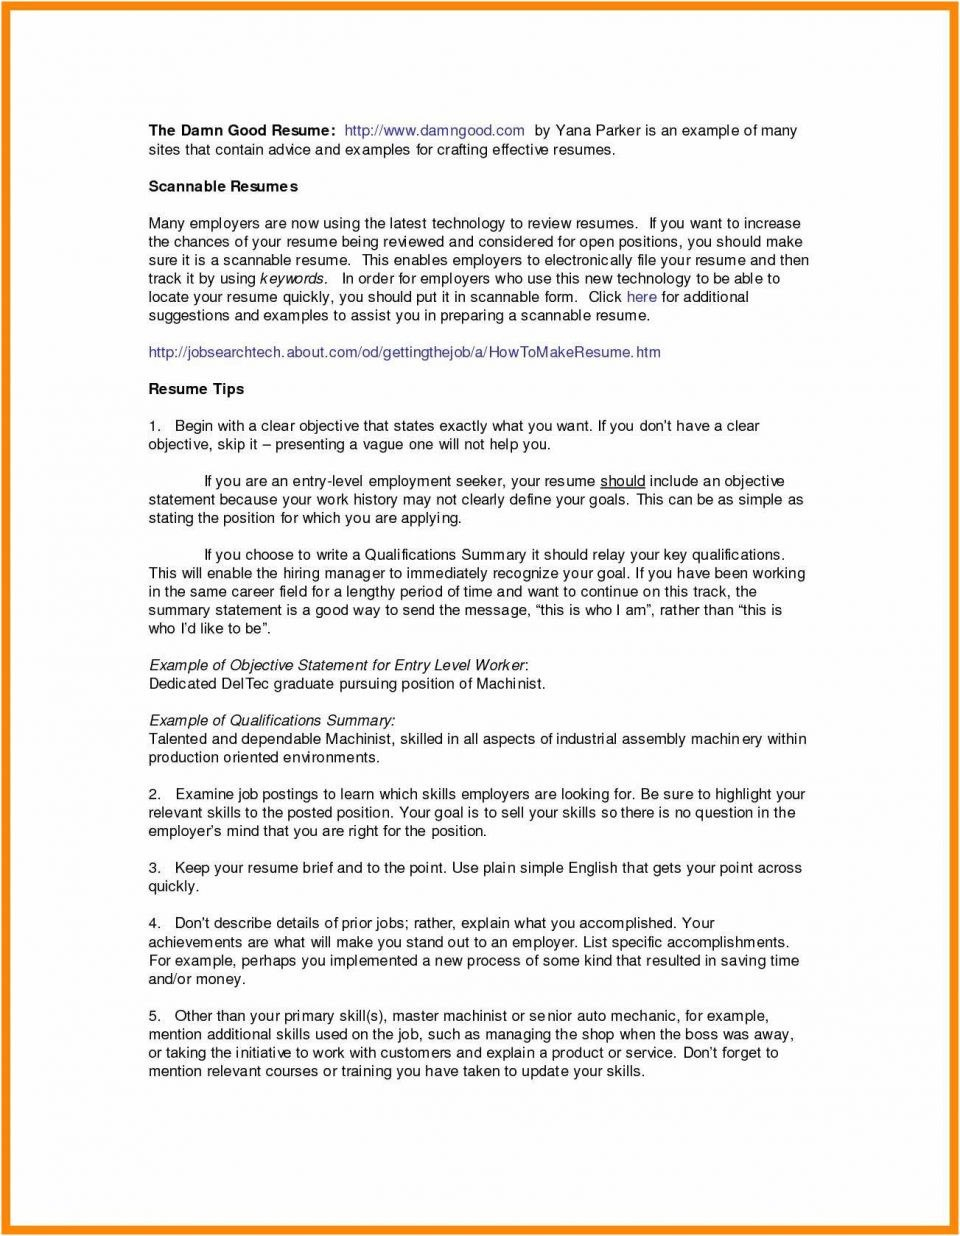 Consulting Services Agreement Template  Lera Mera With Home Care Service Agreement Template